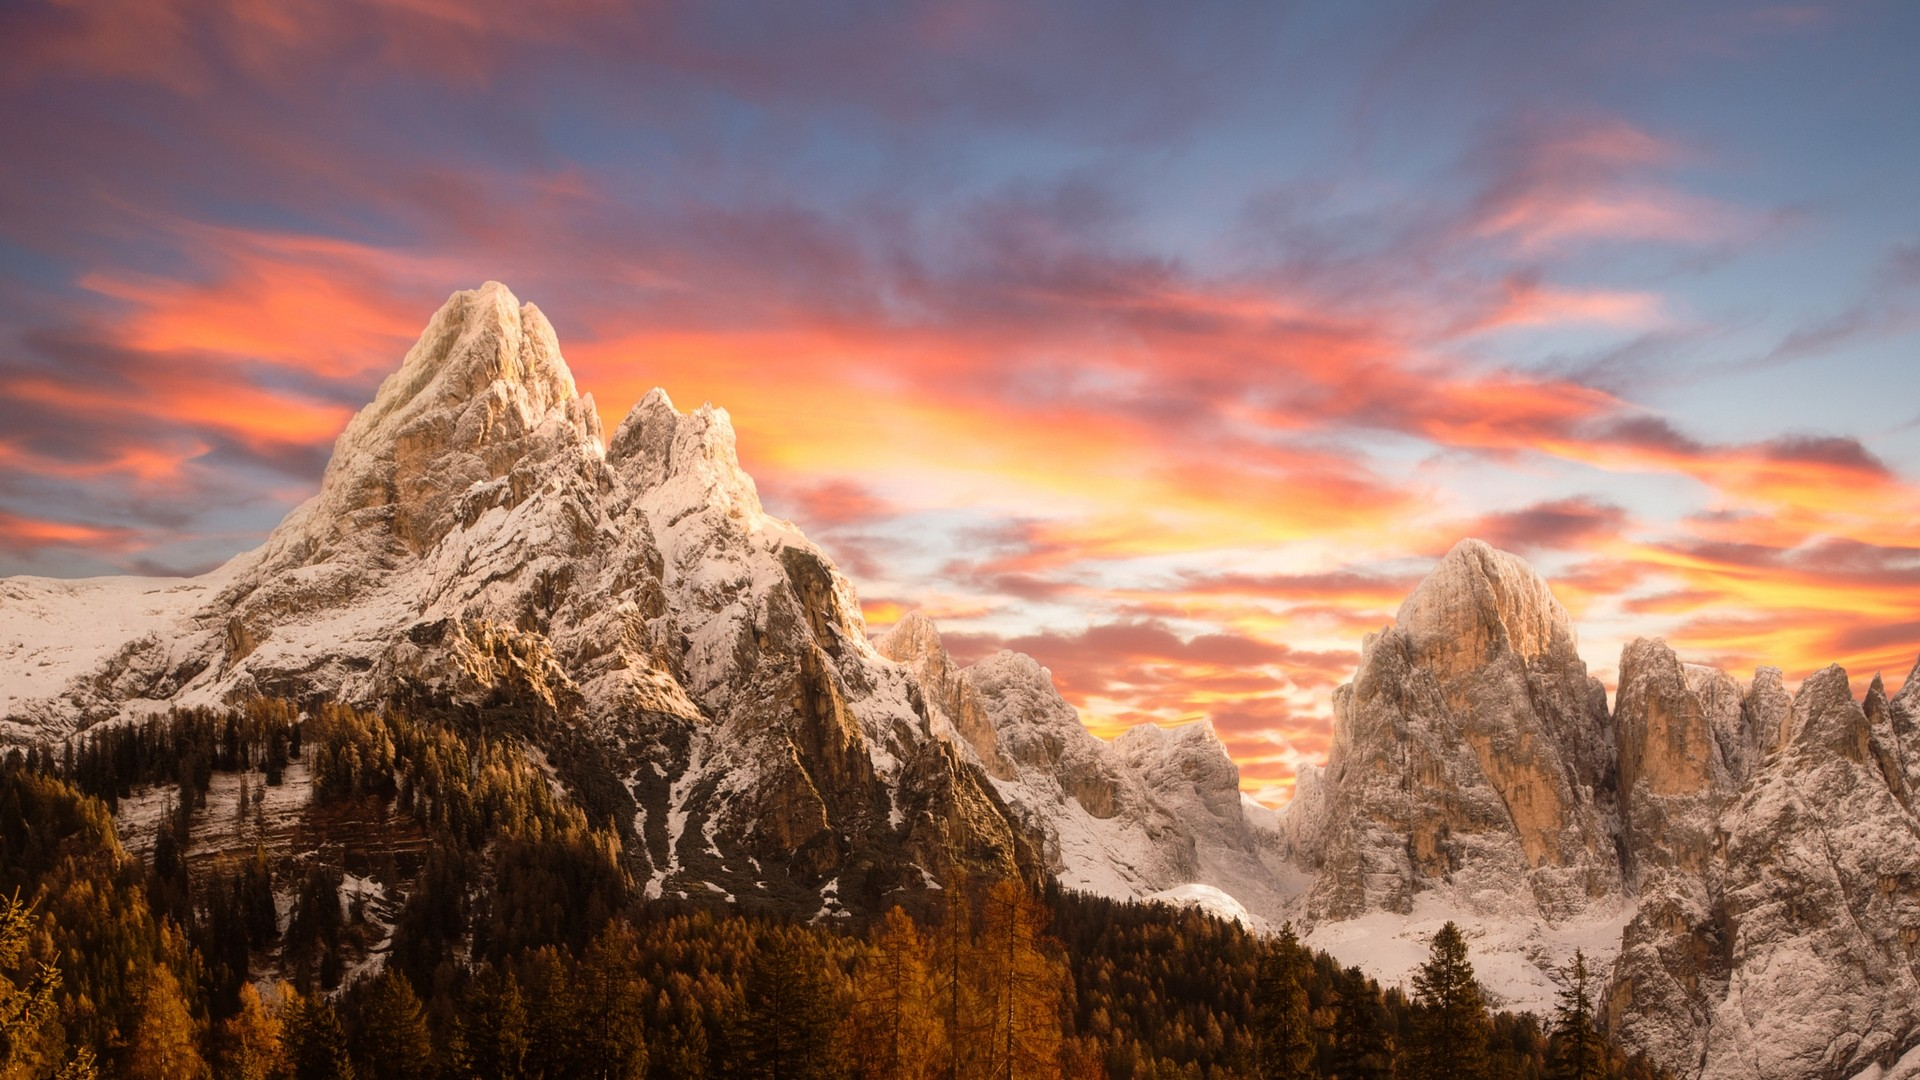 Free 480x800 3d Wallpapers Dolomites Mountains Hd Nature 4k Wallpapers Images